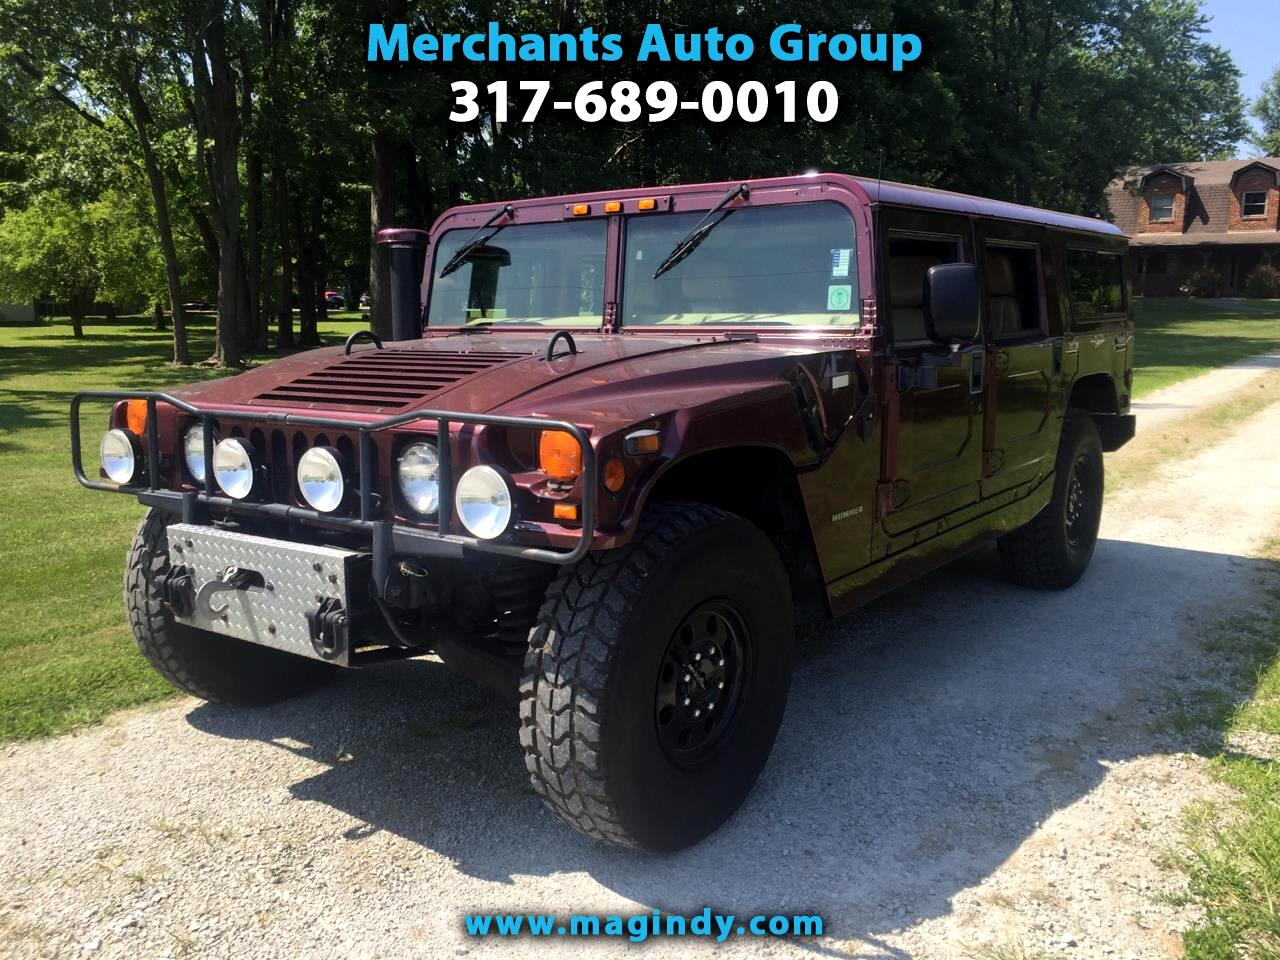 1995 AM General Hummer Hard Top 4-Door